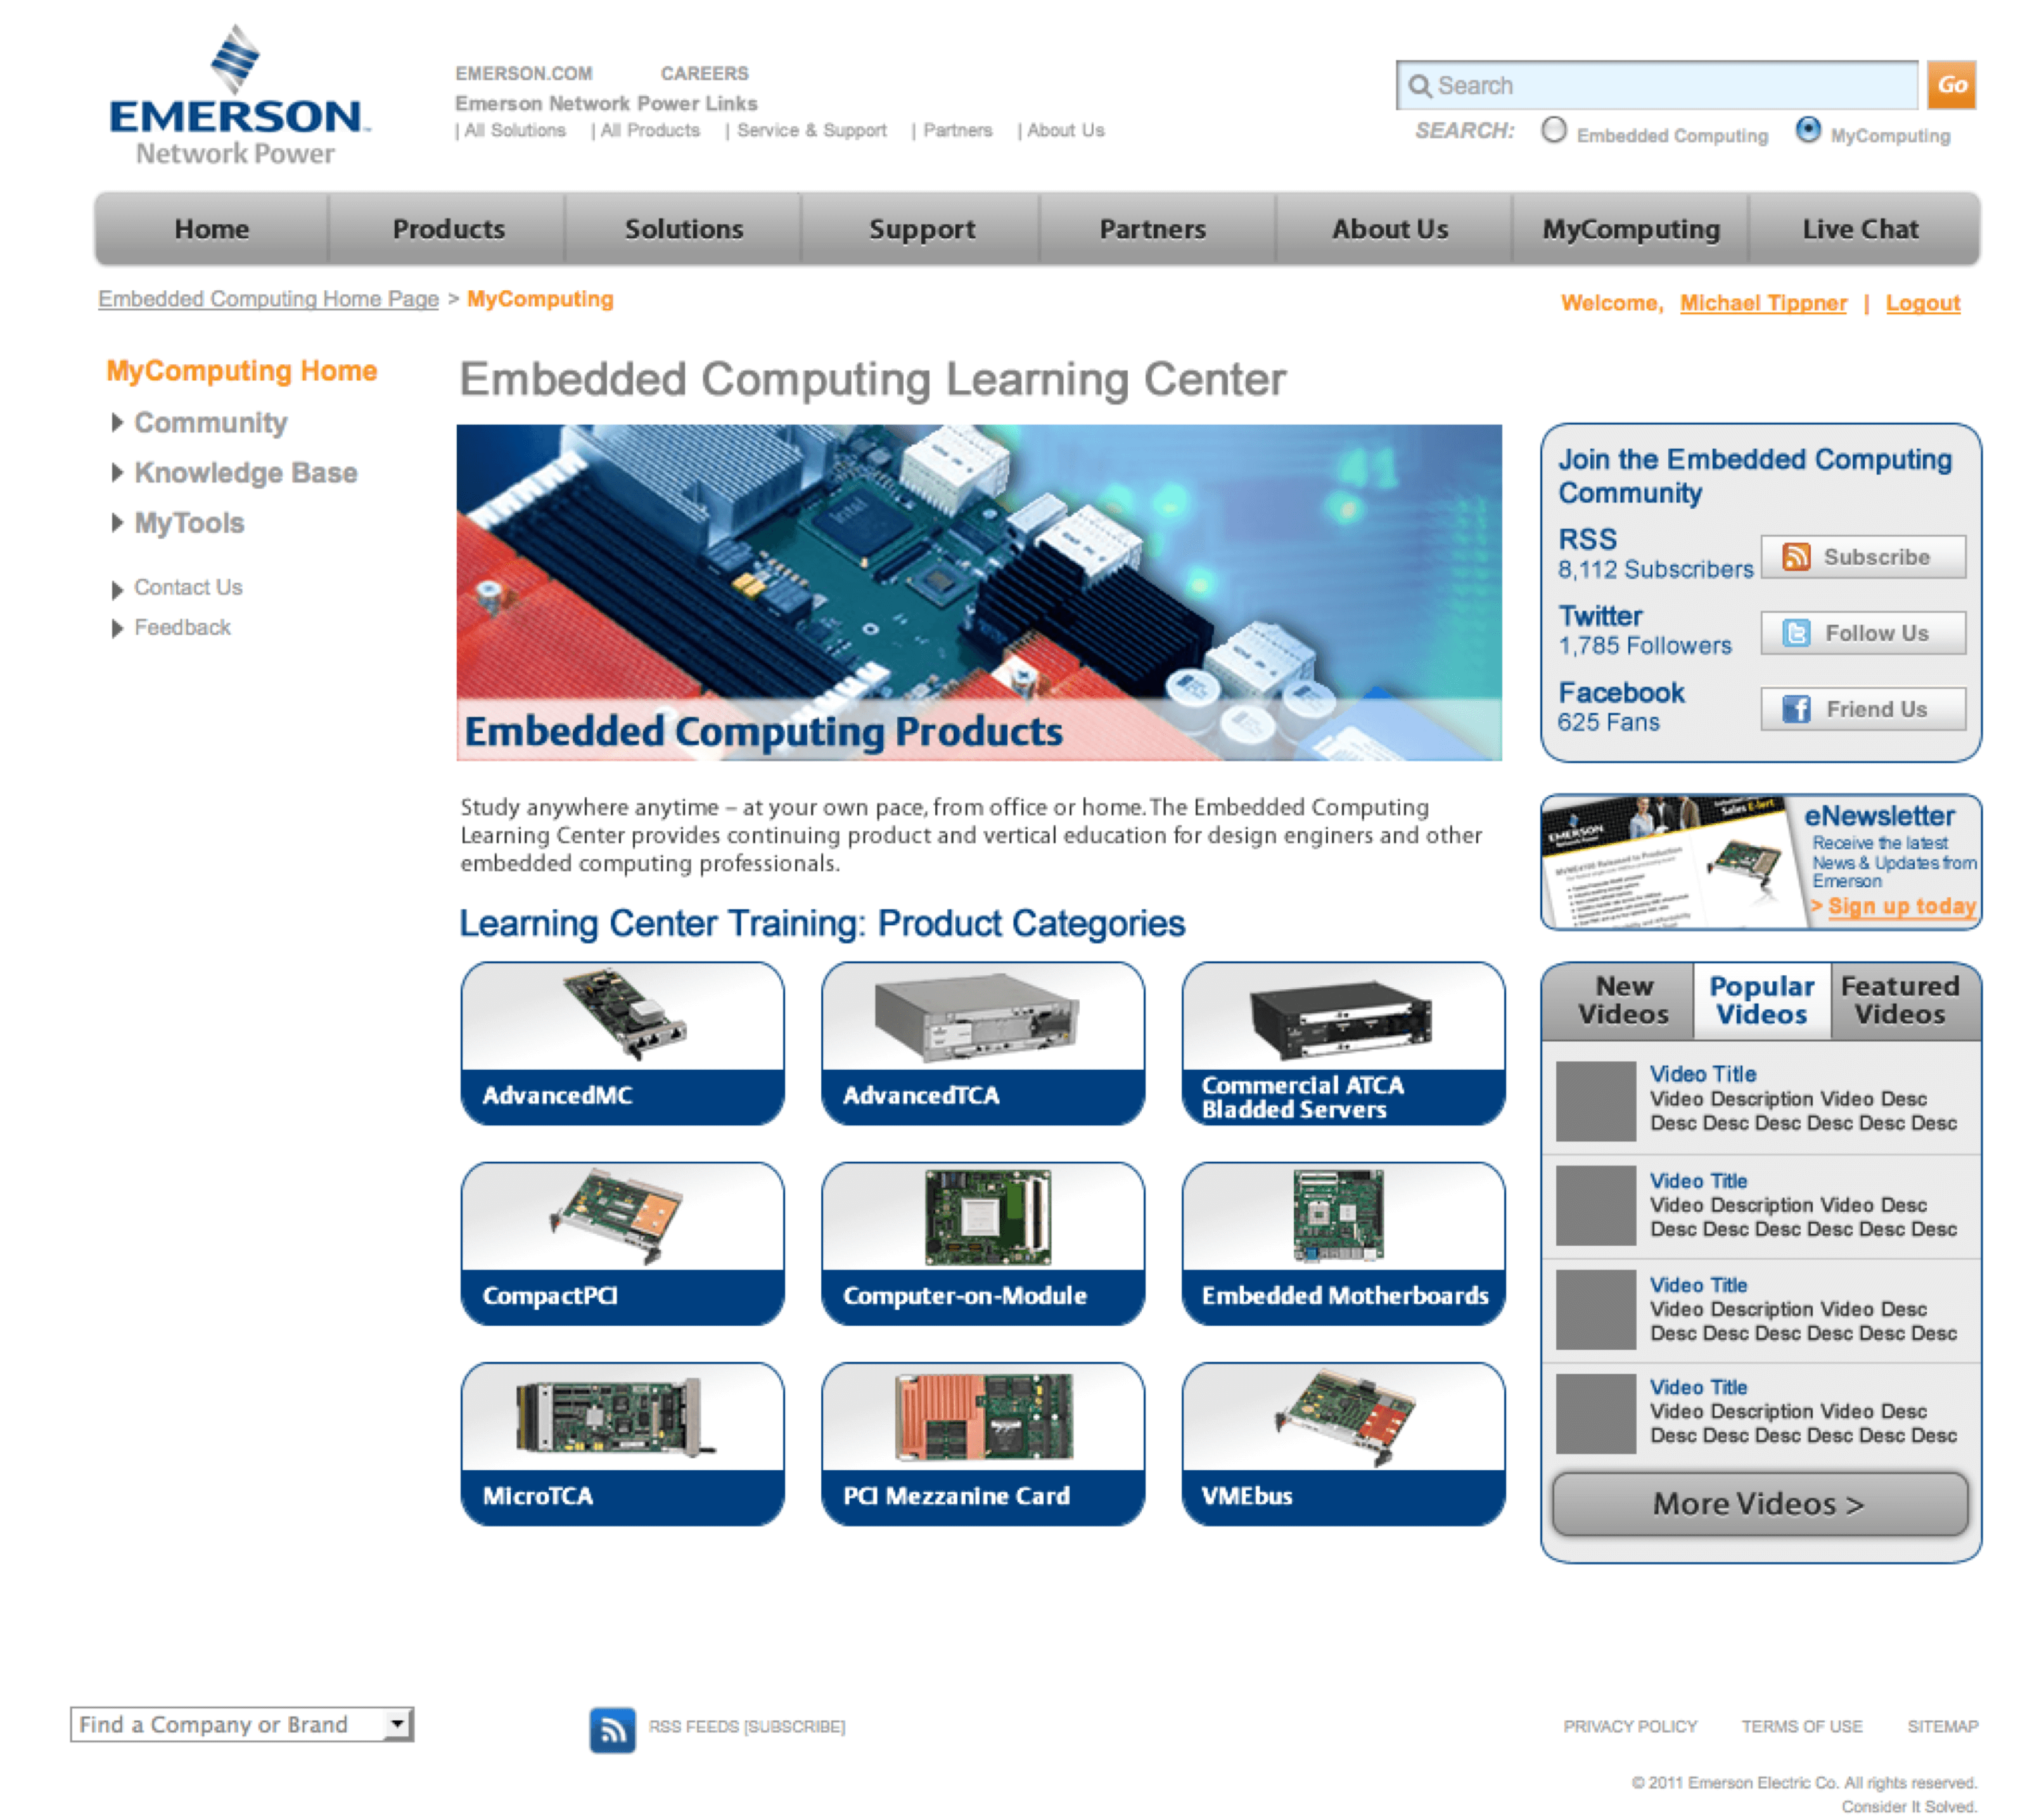 Emerson-Embedded-Computing-Extranet-Portal-Product-Training-Page